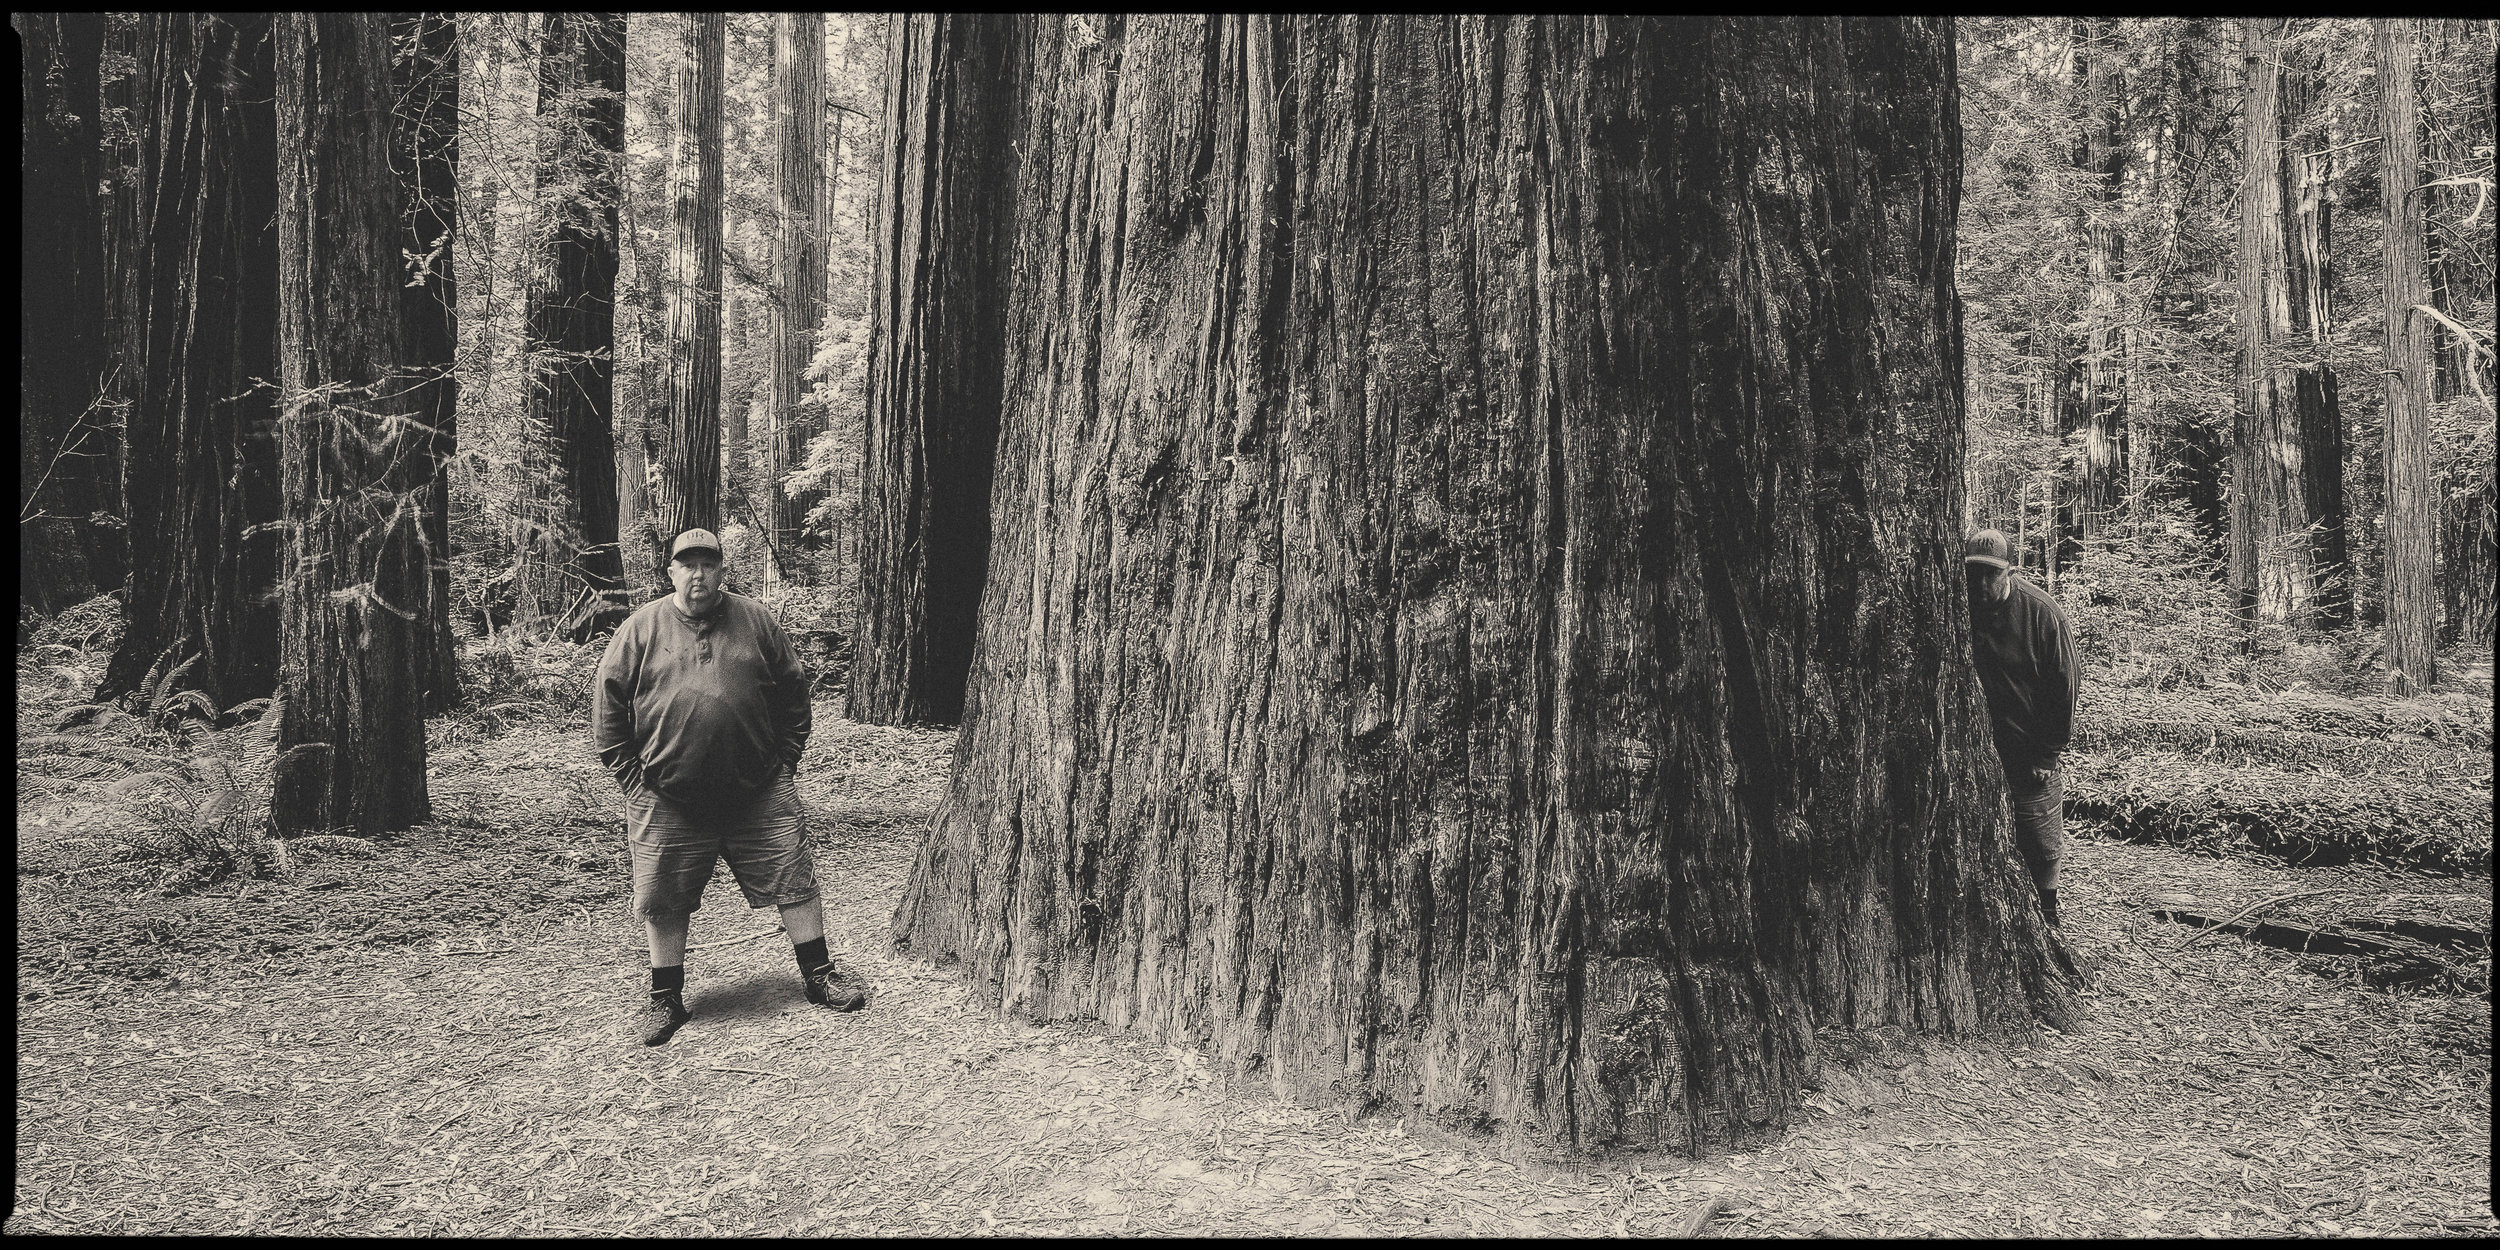 Time Traveller; Humboldt Redwoods State Park, California USA